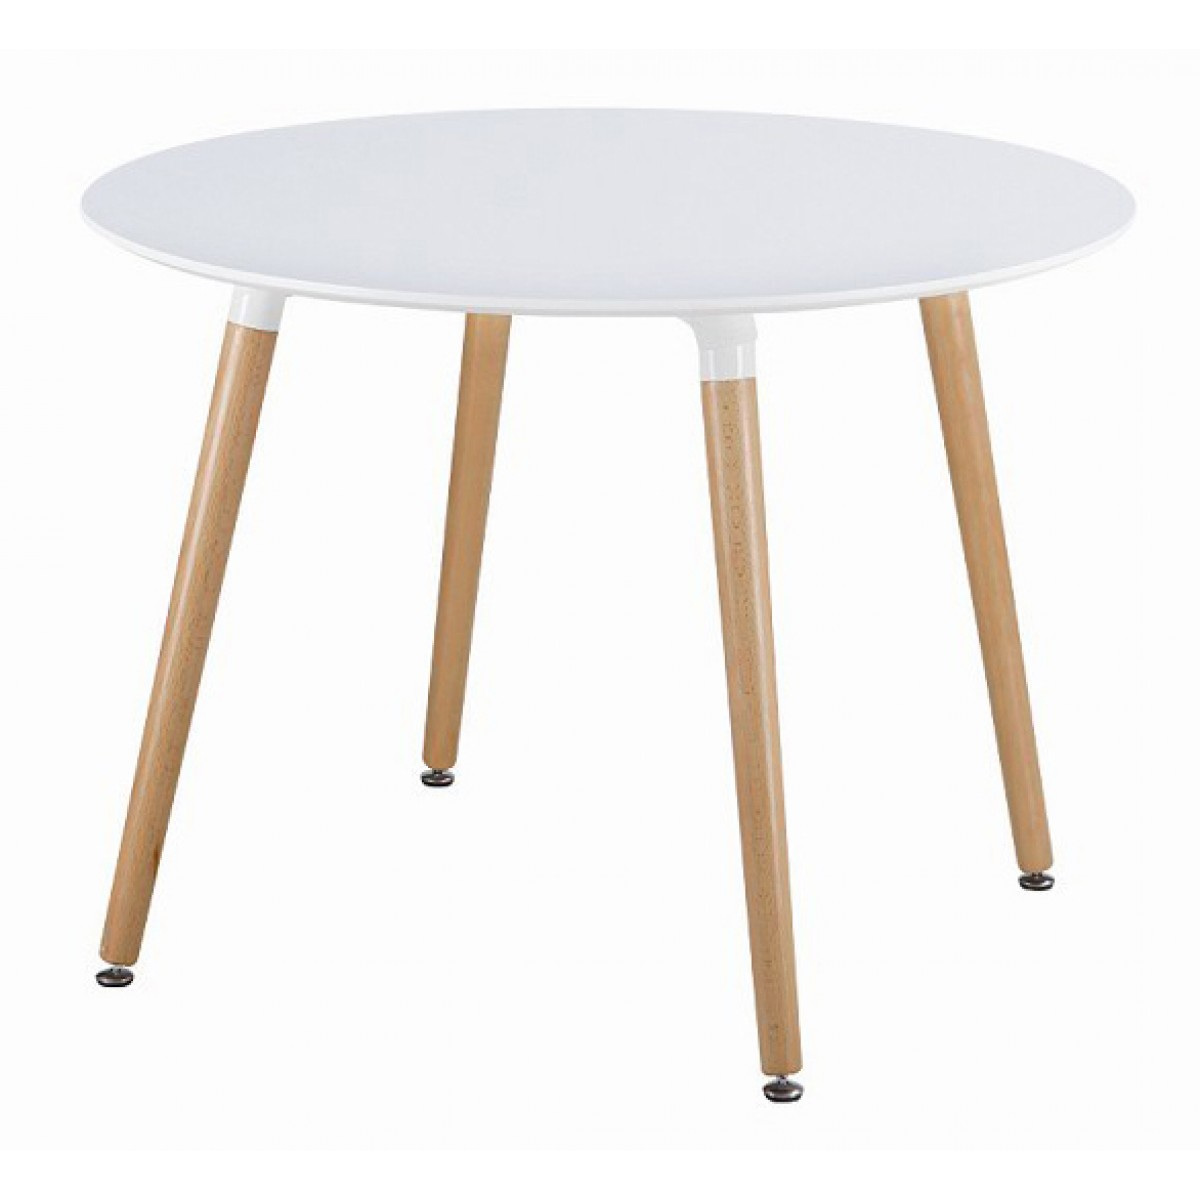 Eames style dsw white round dining table White round dining table